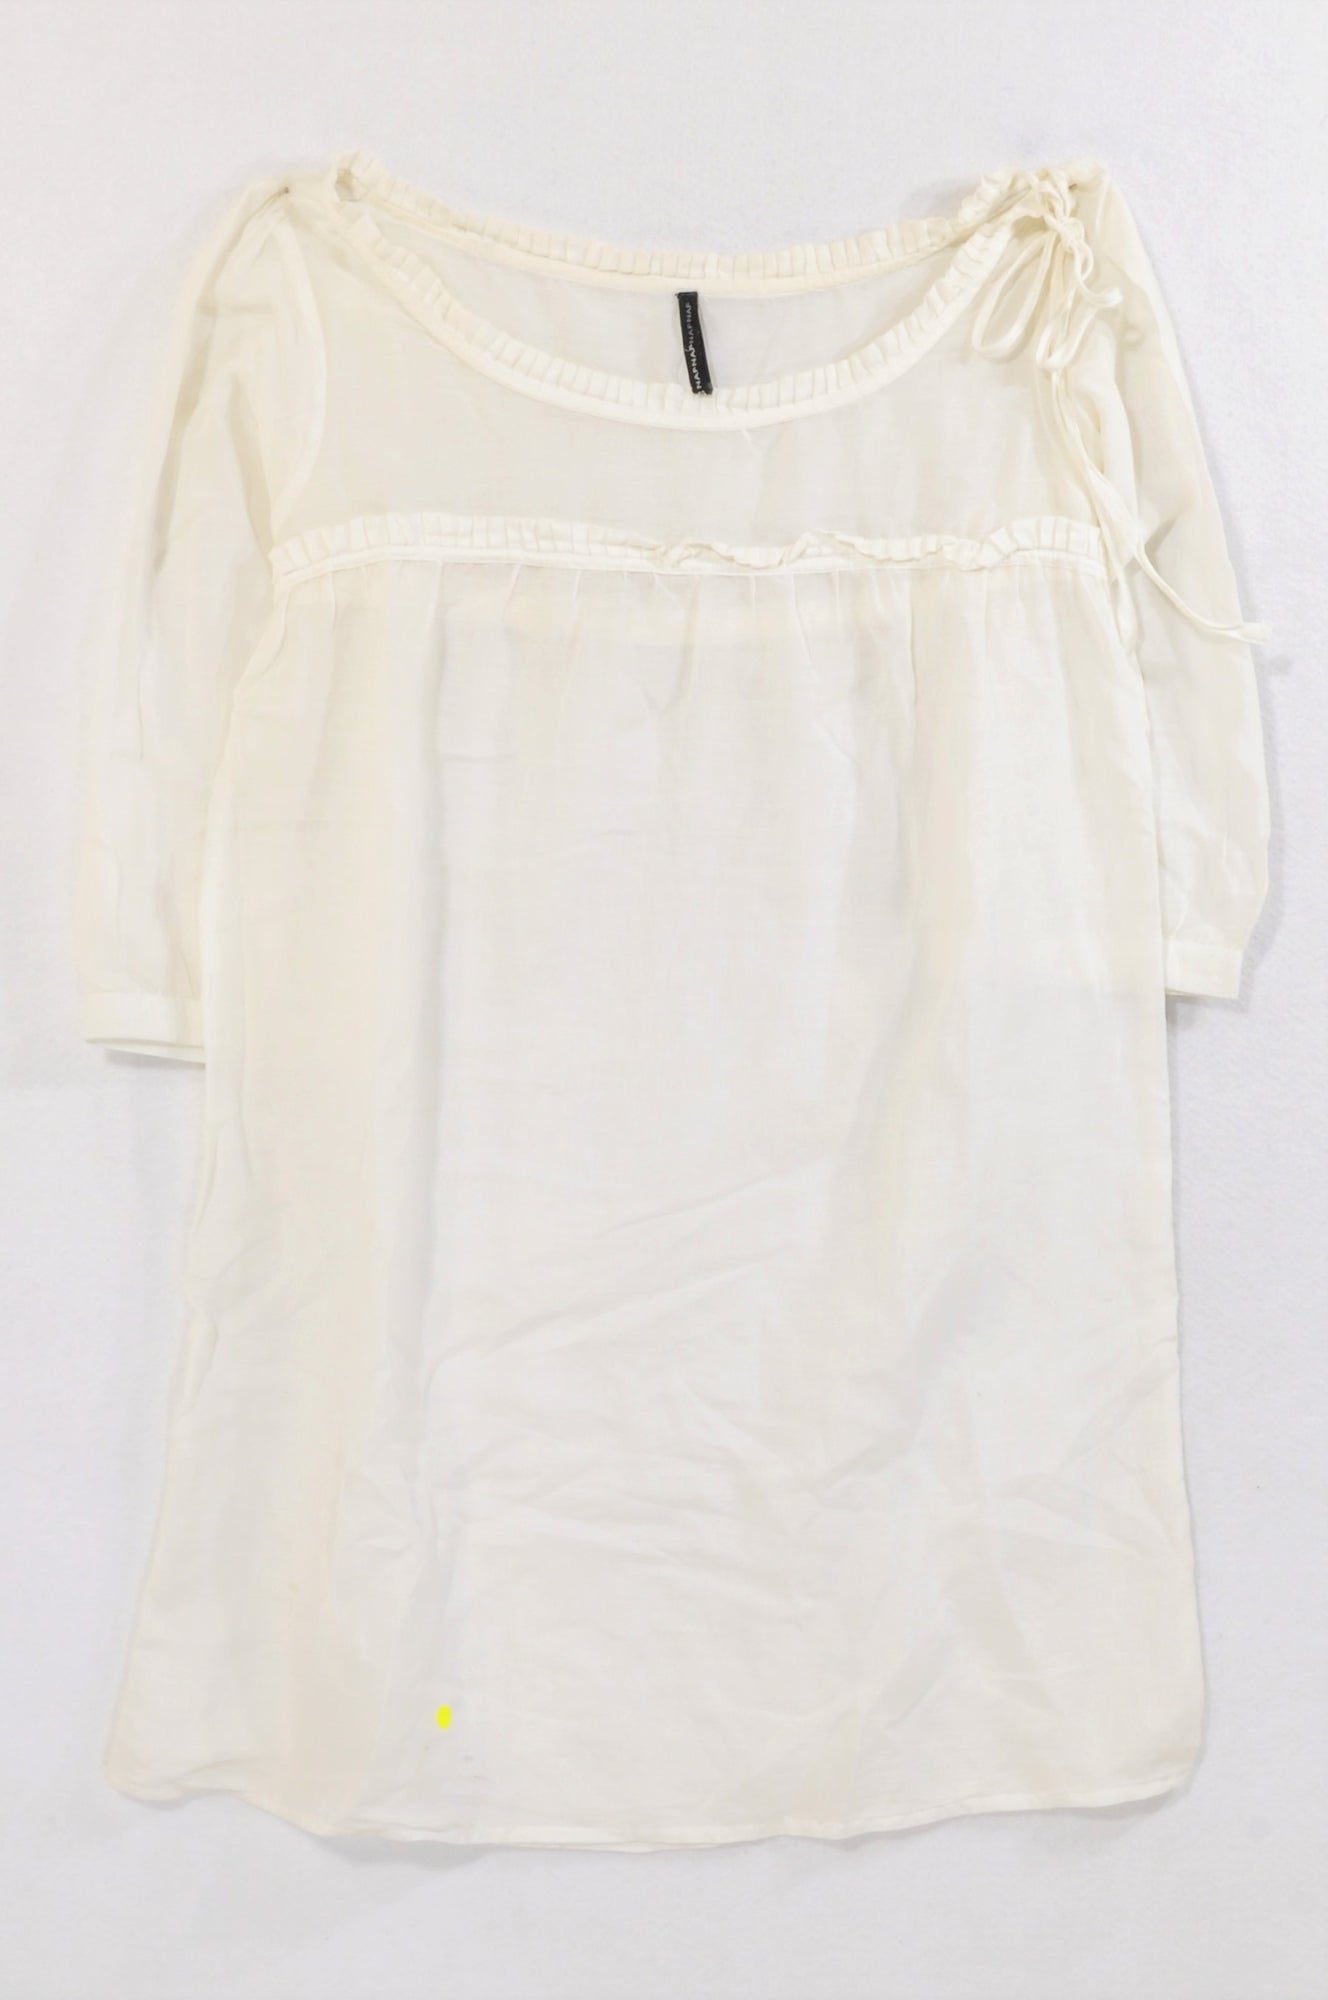 Naf Naf Ivory Sheer Pleated Detail Blouse Women Size 34